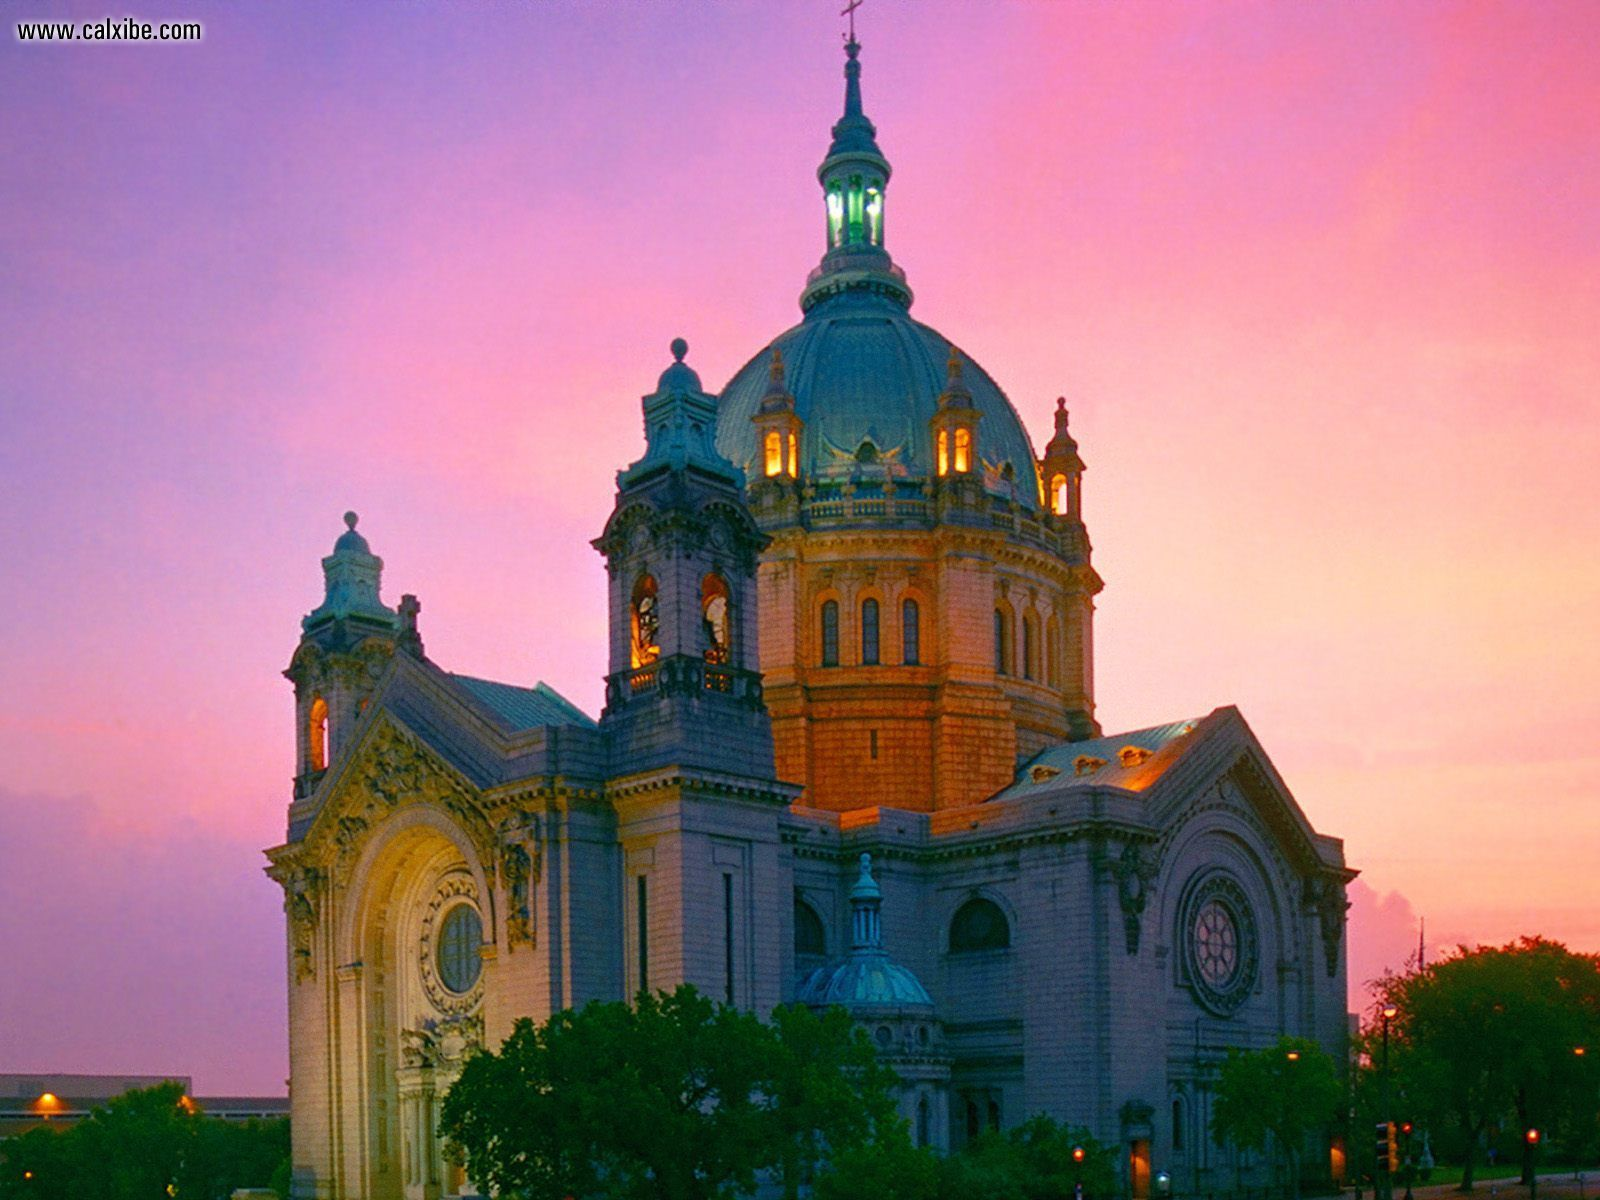 City Cathedral of Saint Paul Minnesota desktop wallpaper nr 1600x1200